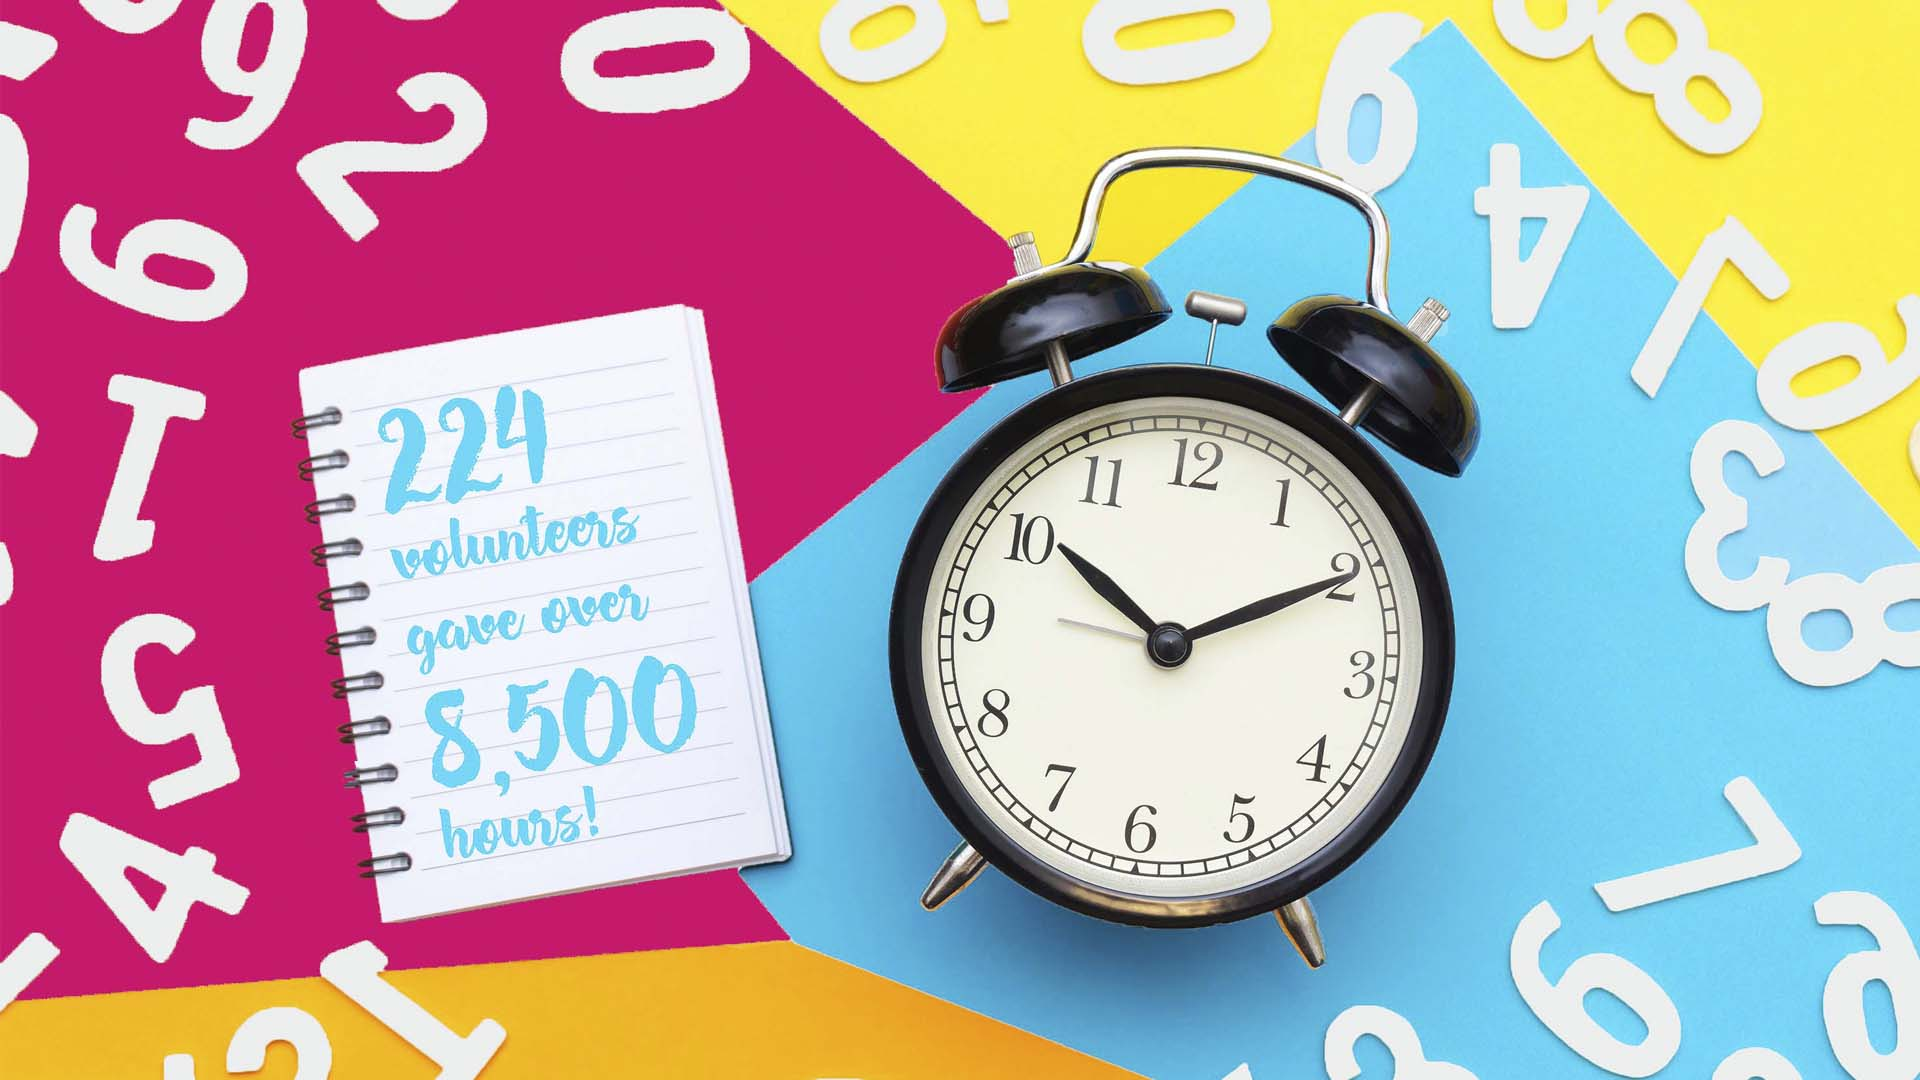 224 dedicated volunteers gave over 8,500 hours over the last year